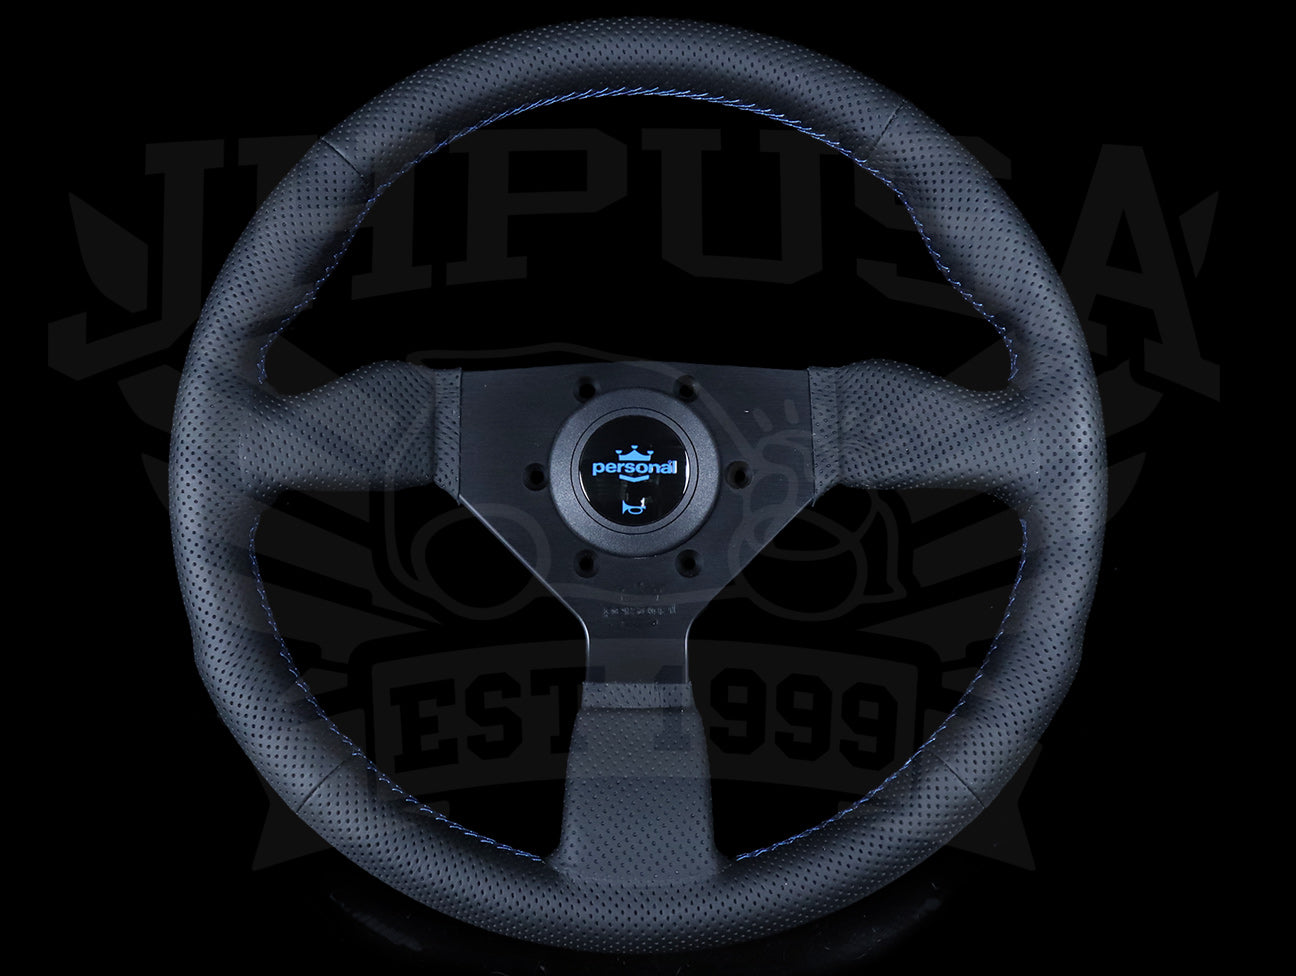 Personal Neo Grinta 350mm Steering Wheels - Perforated Leather / Blue Stitch